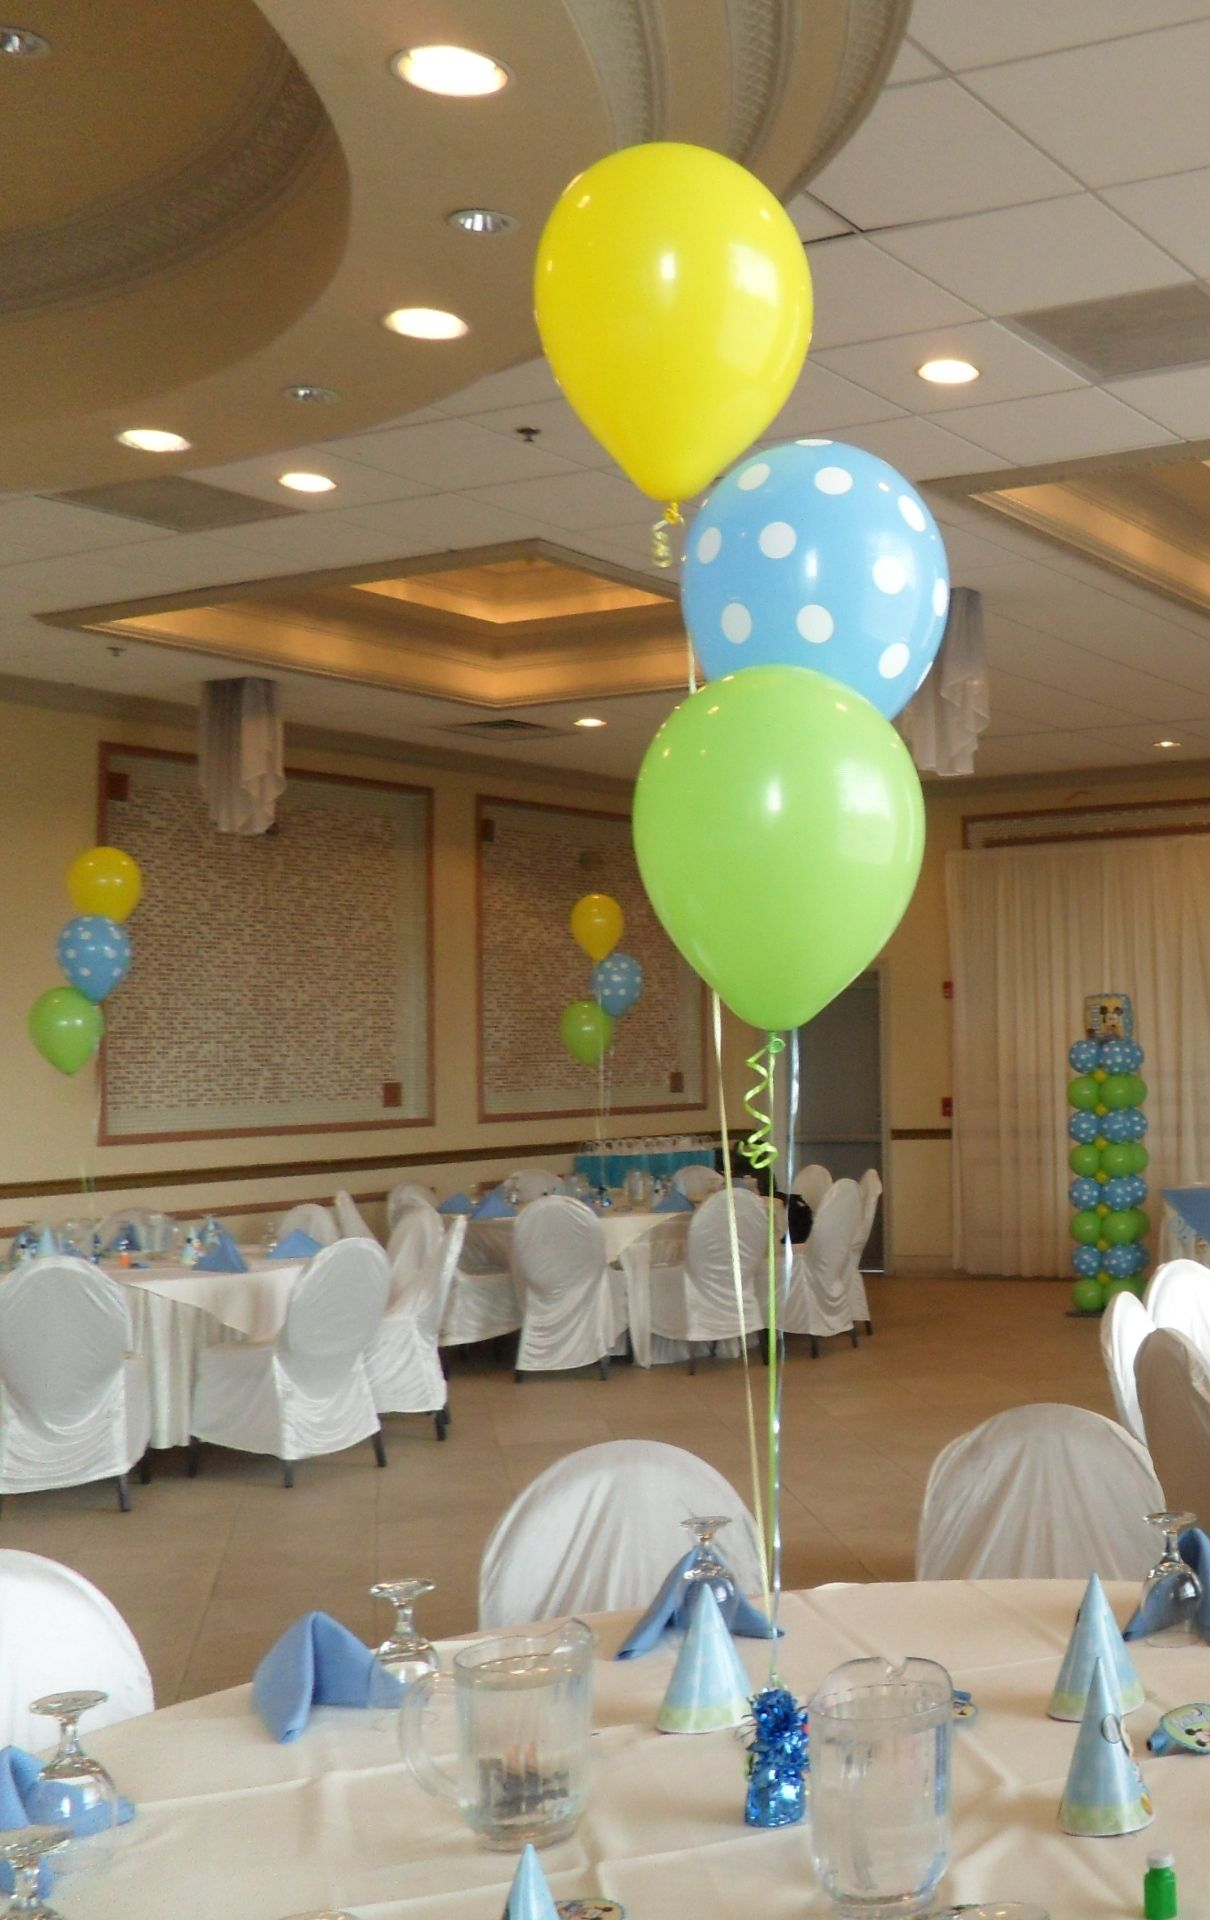 Baby mickey mouse balloon centerpiece using lime green